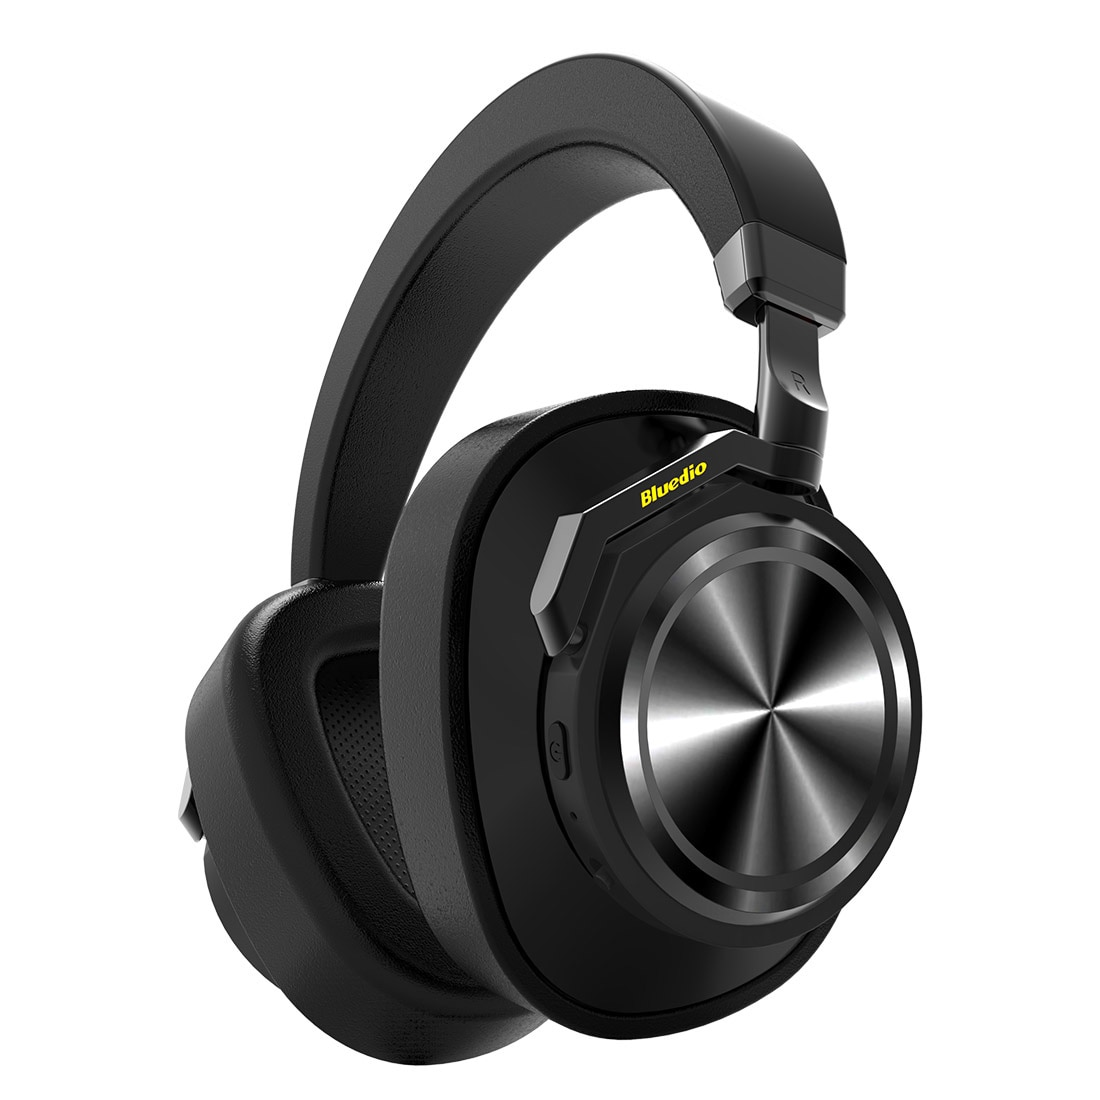 Bluedio T6 ANC bluetooth headphone T7 simplified version headset with powerful bass sound mic and noise reduction wired earphone enlarge